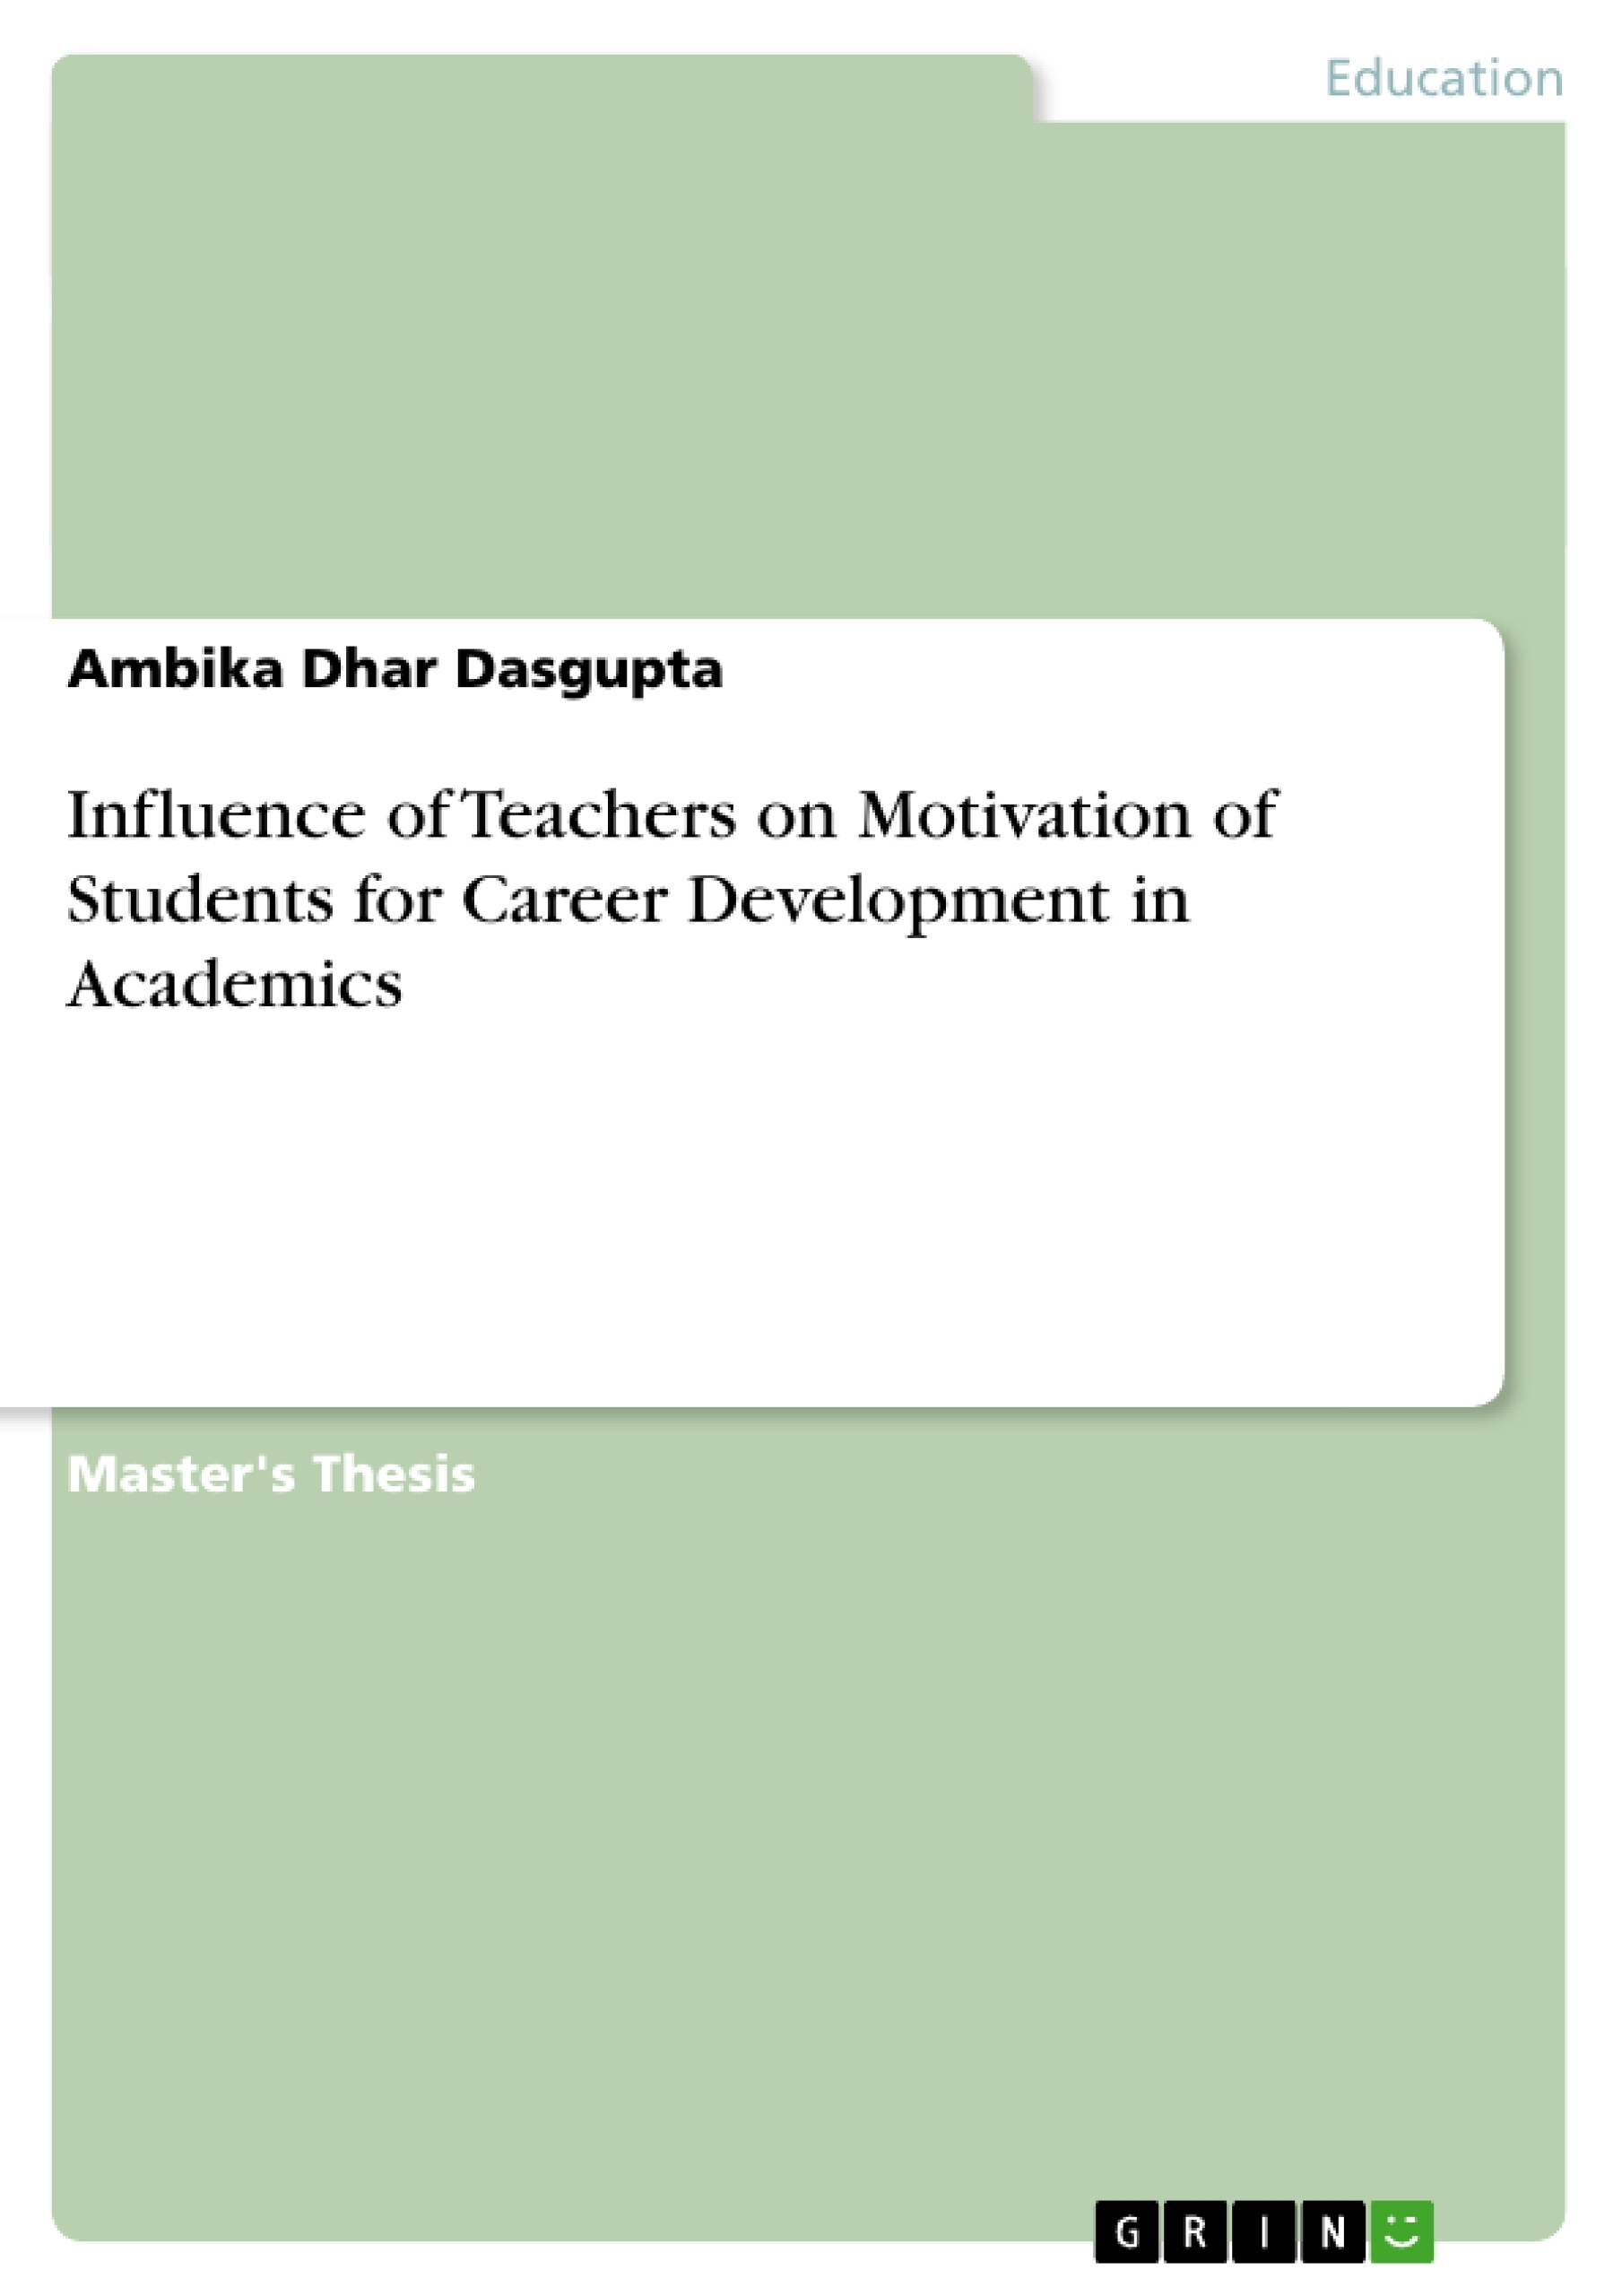 Title: Influence of Teachers on Motivation of Students for Career Development in Academics